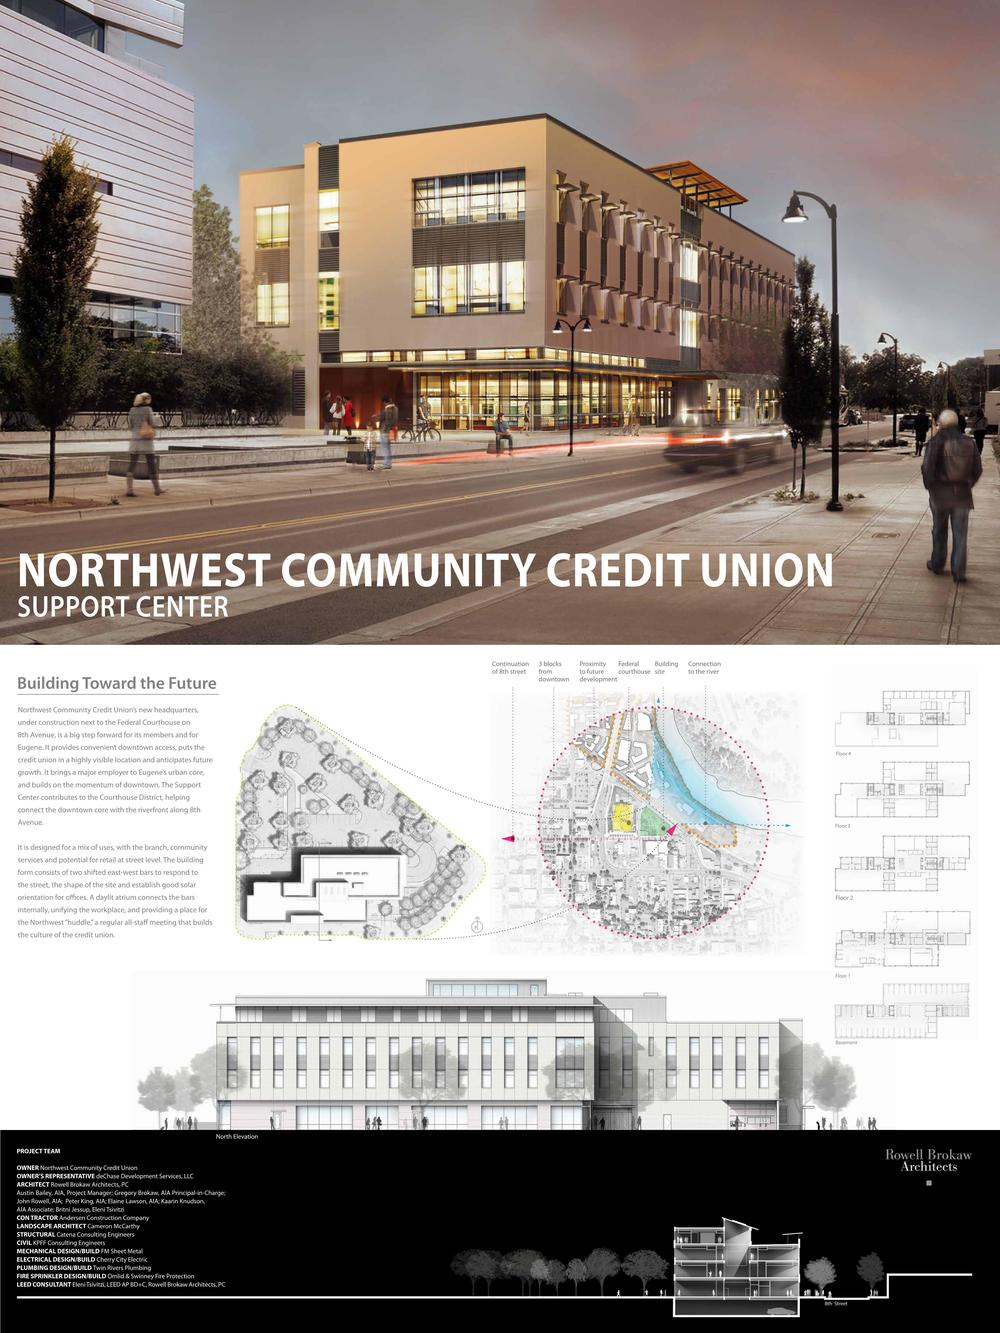 NorthwestCCU_board (1).jpg